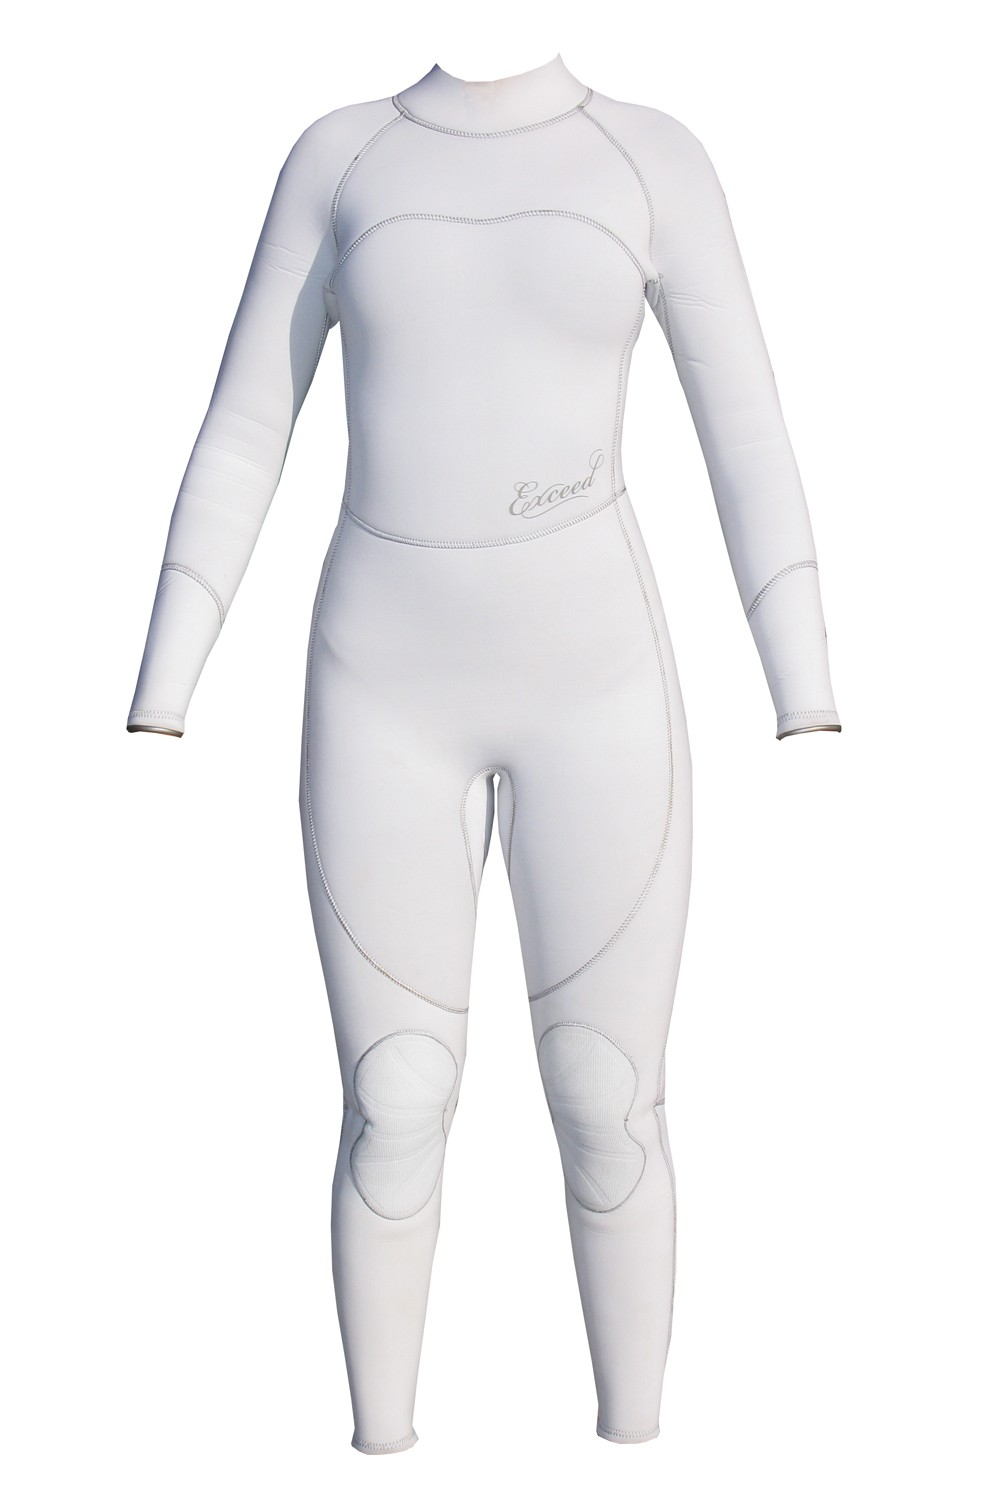 Exceed Empress White Womens 3/2mm Full Wetsuit